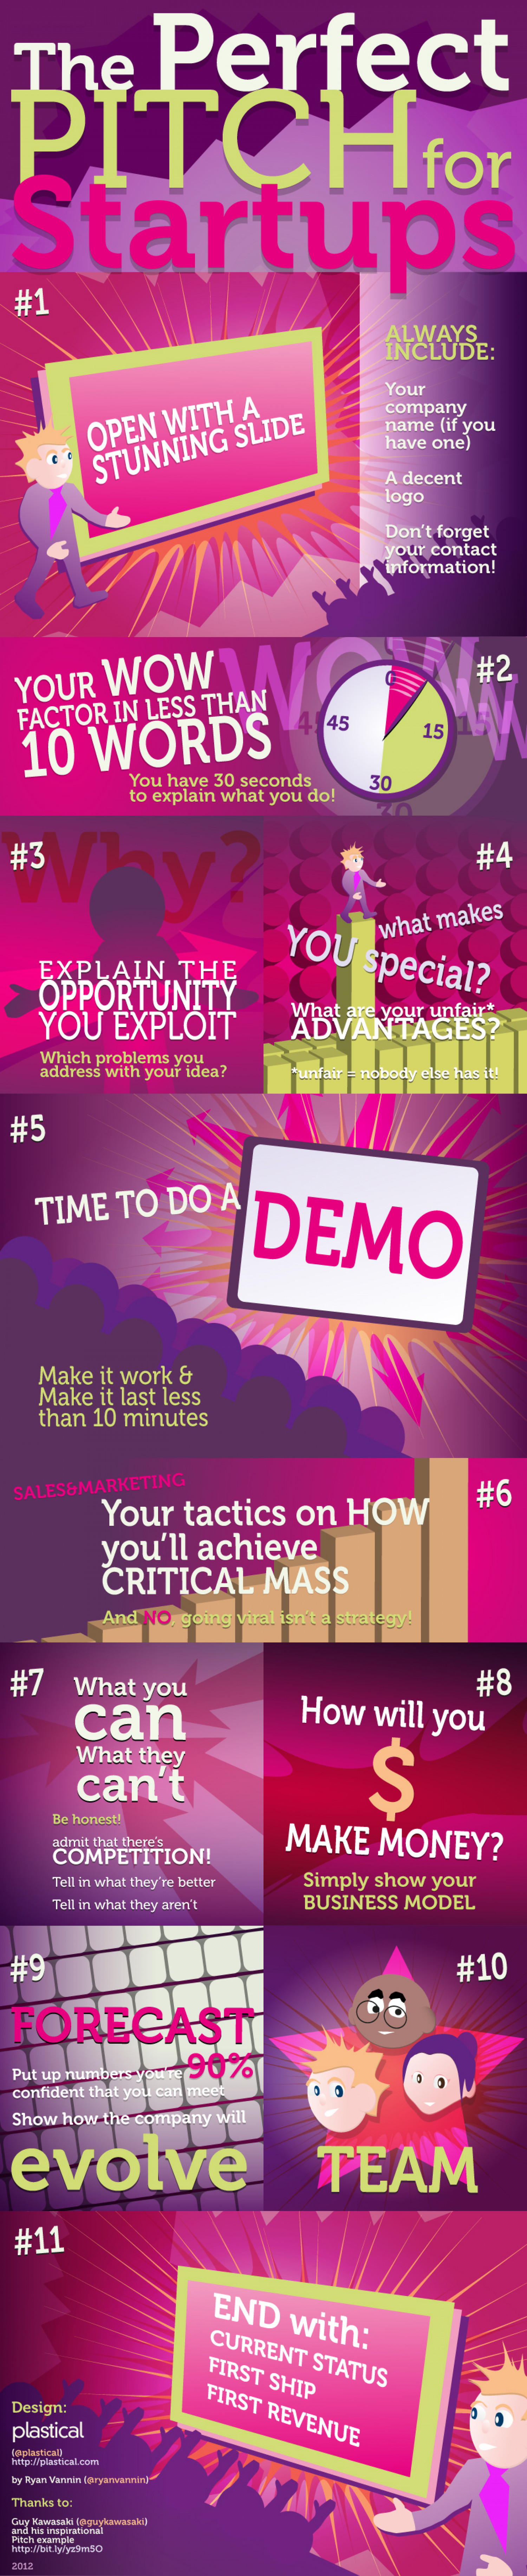 The Perfect Pitch for Startups Infographic